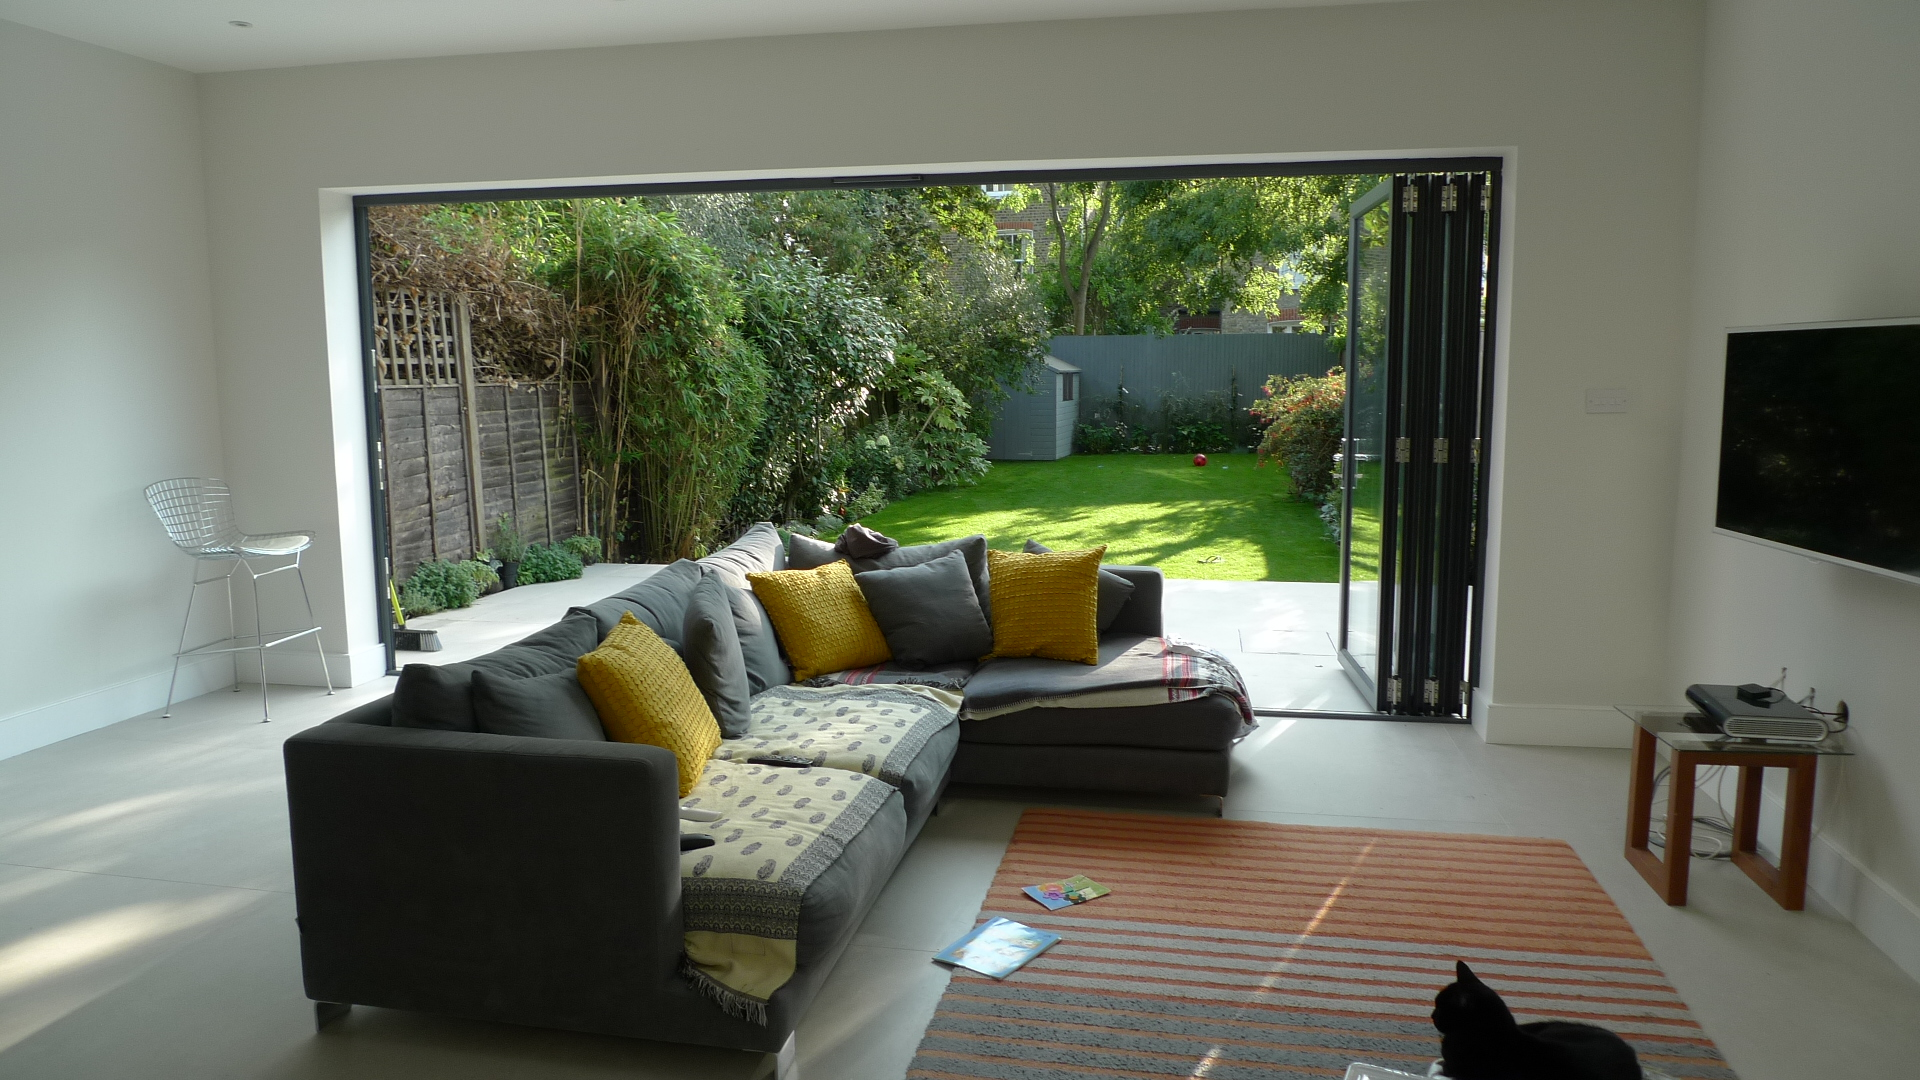 Modern Design Interior And Exterior Balham Tooting London London Garden Blog